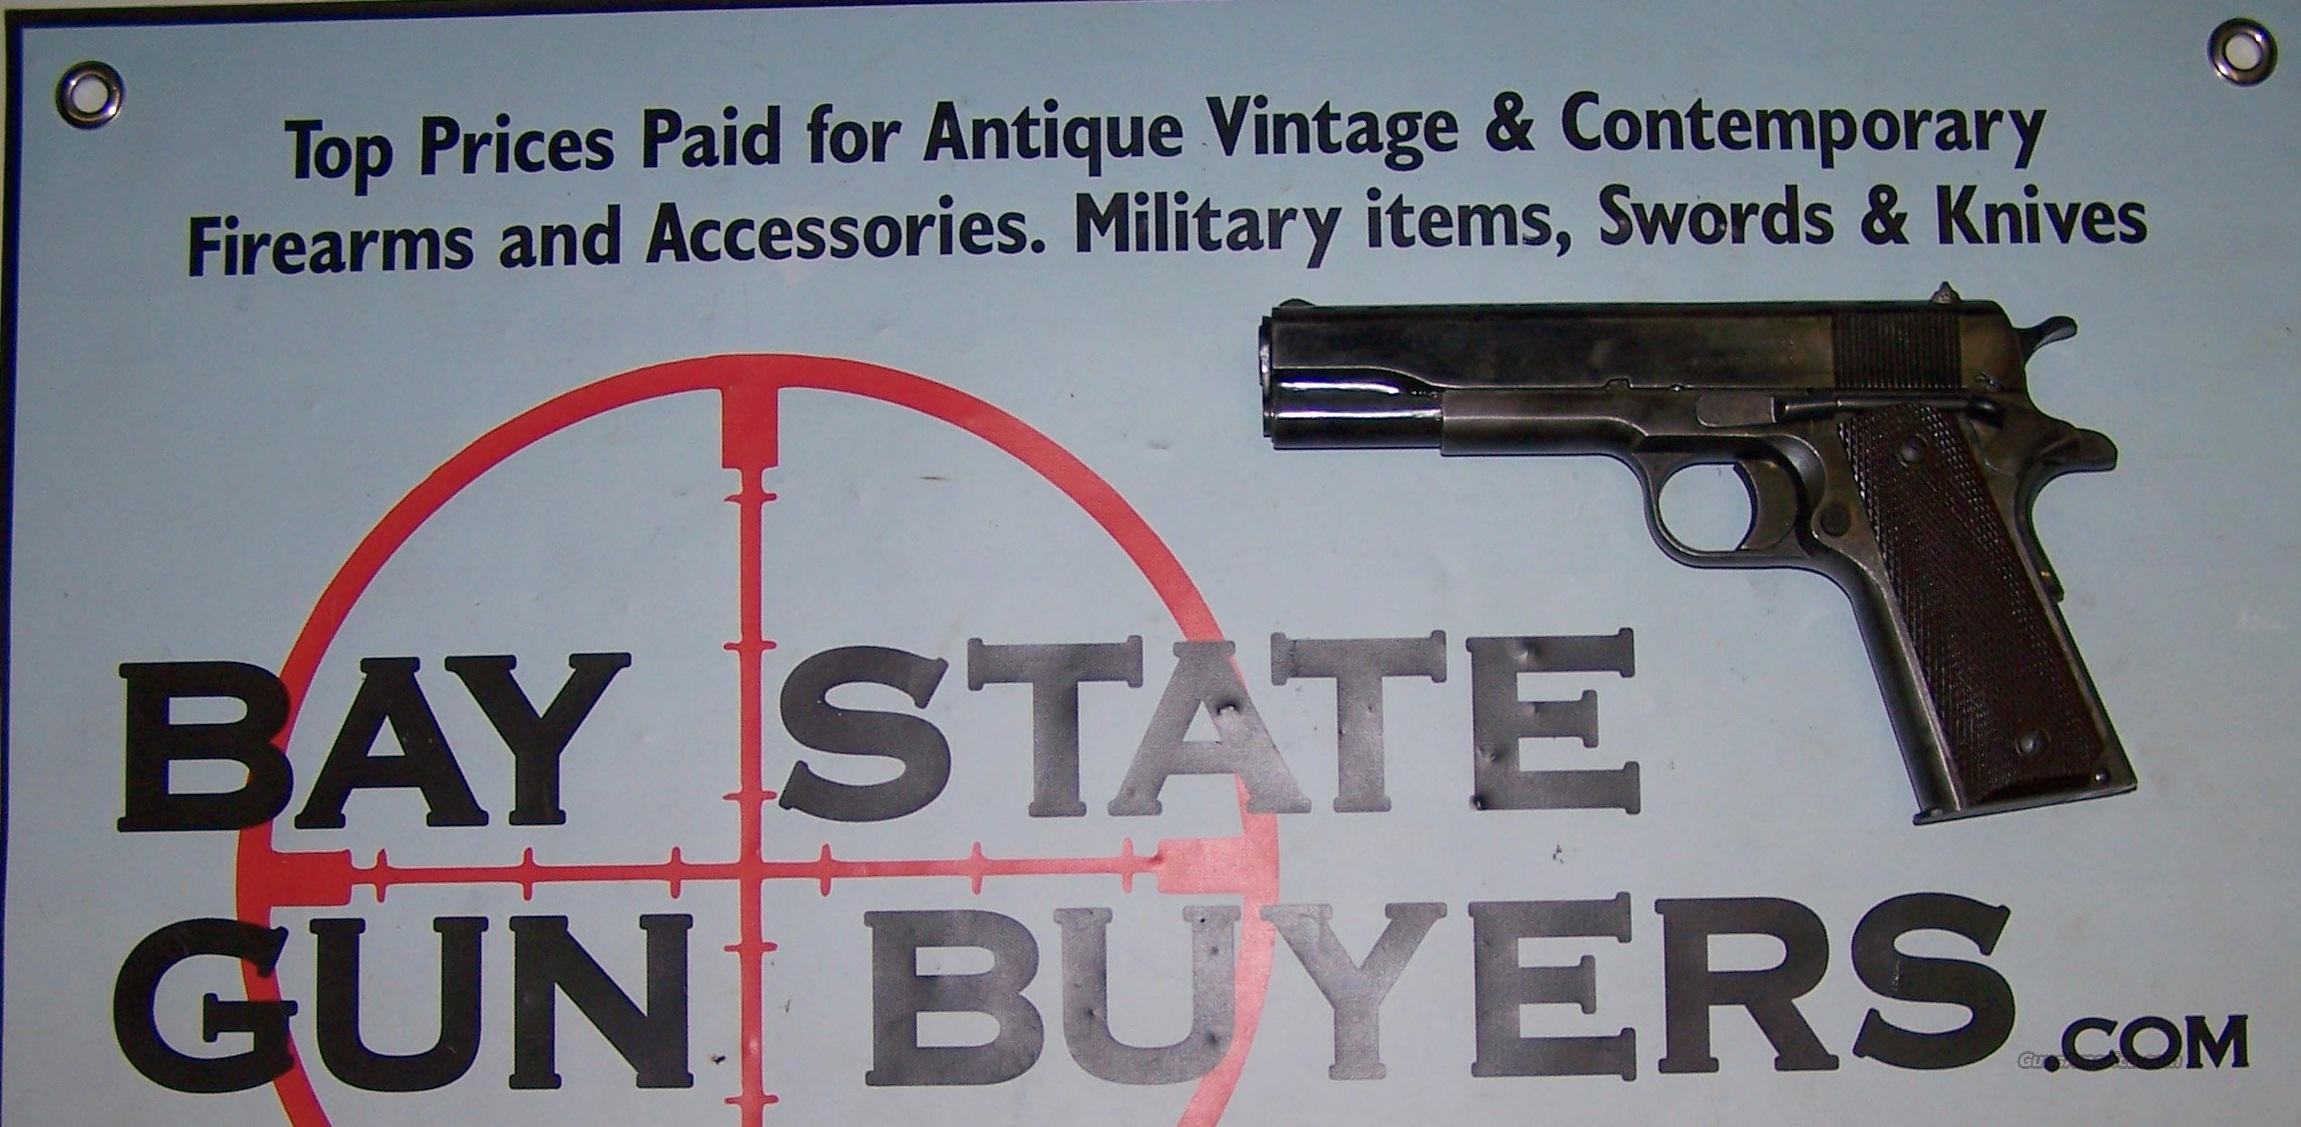 WWII Remington 1911M1 pistol .45 ACP ORIGINAL CONDITION  Guns > Pistols > Remington Pistols - Modern